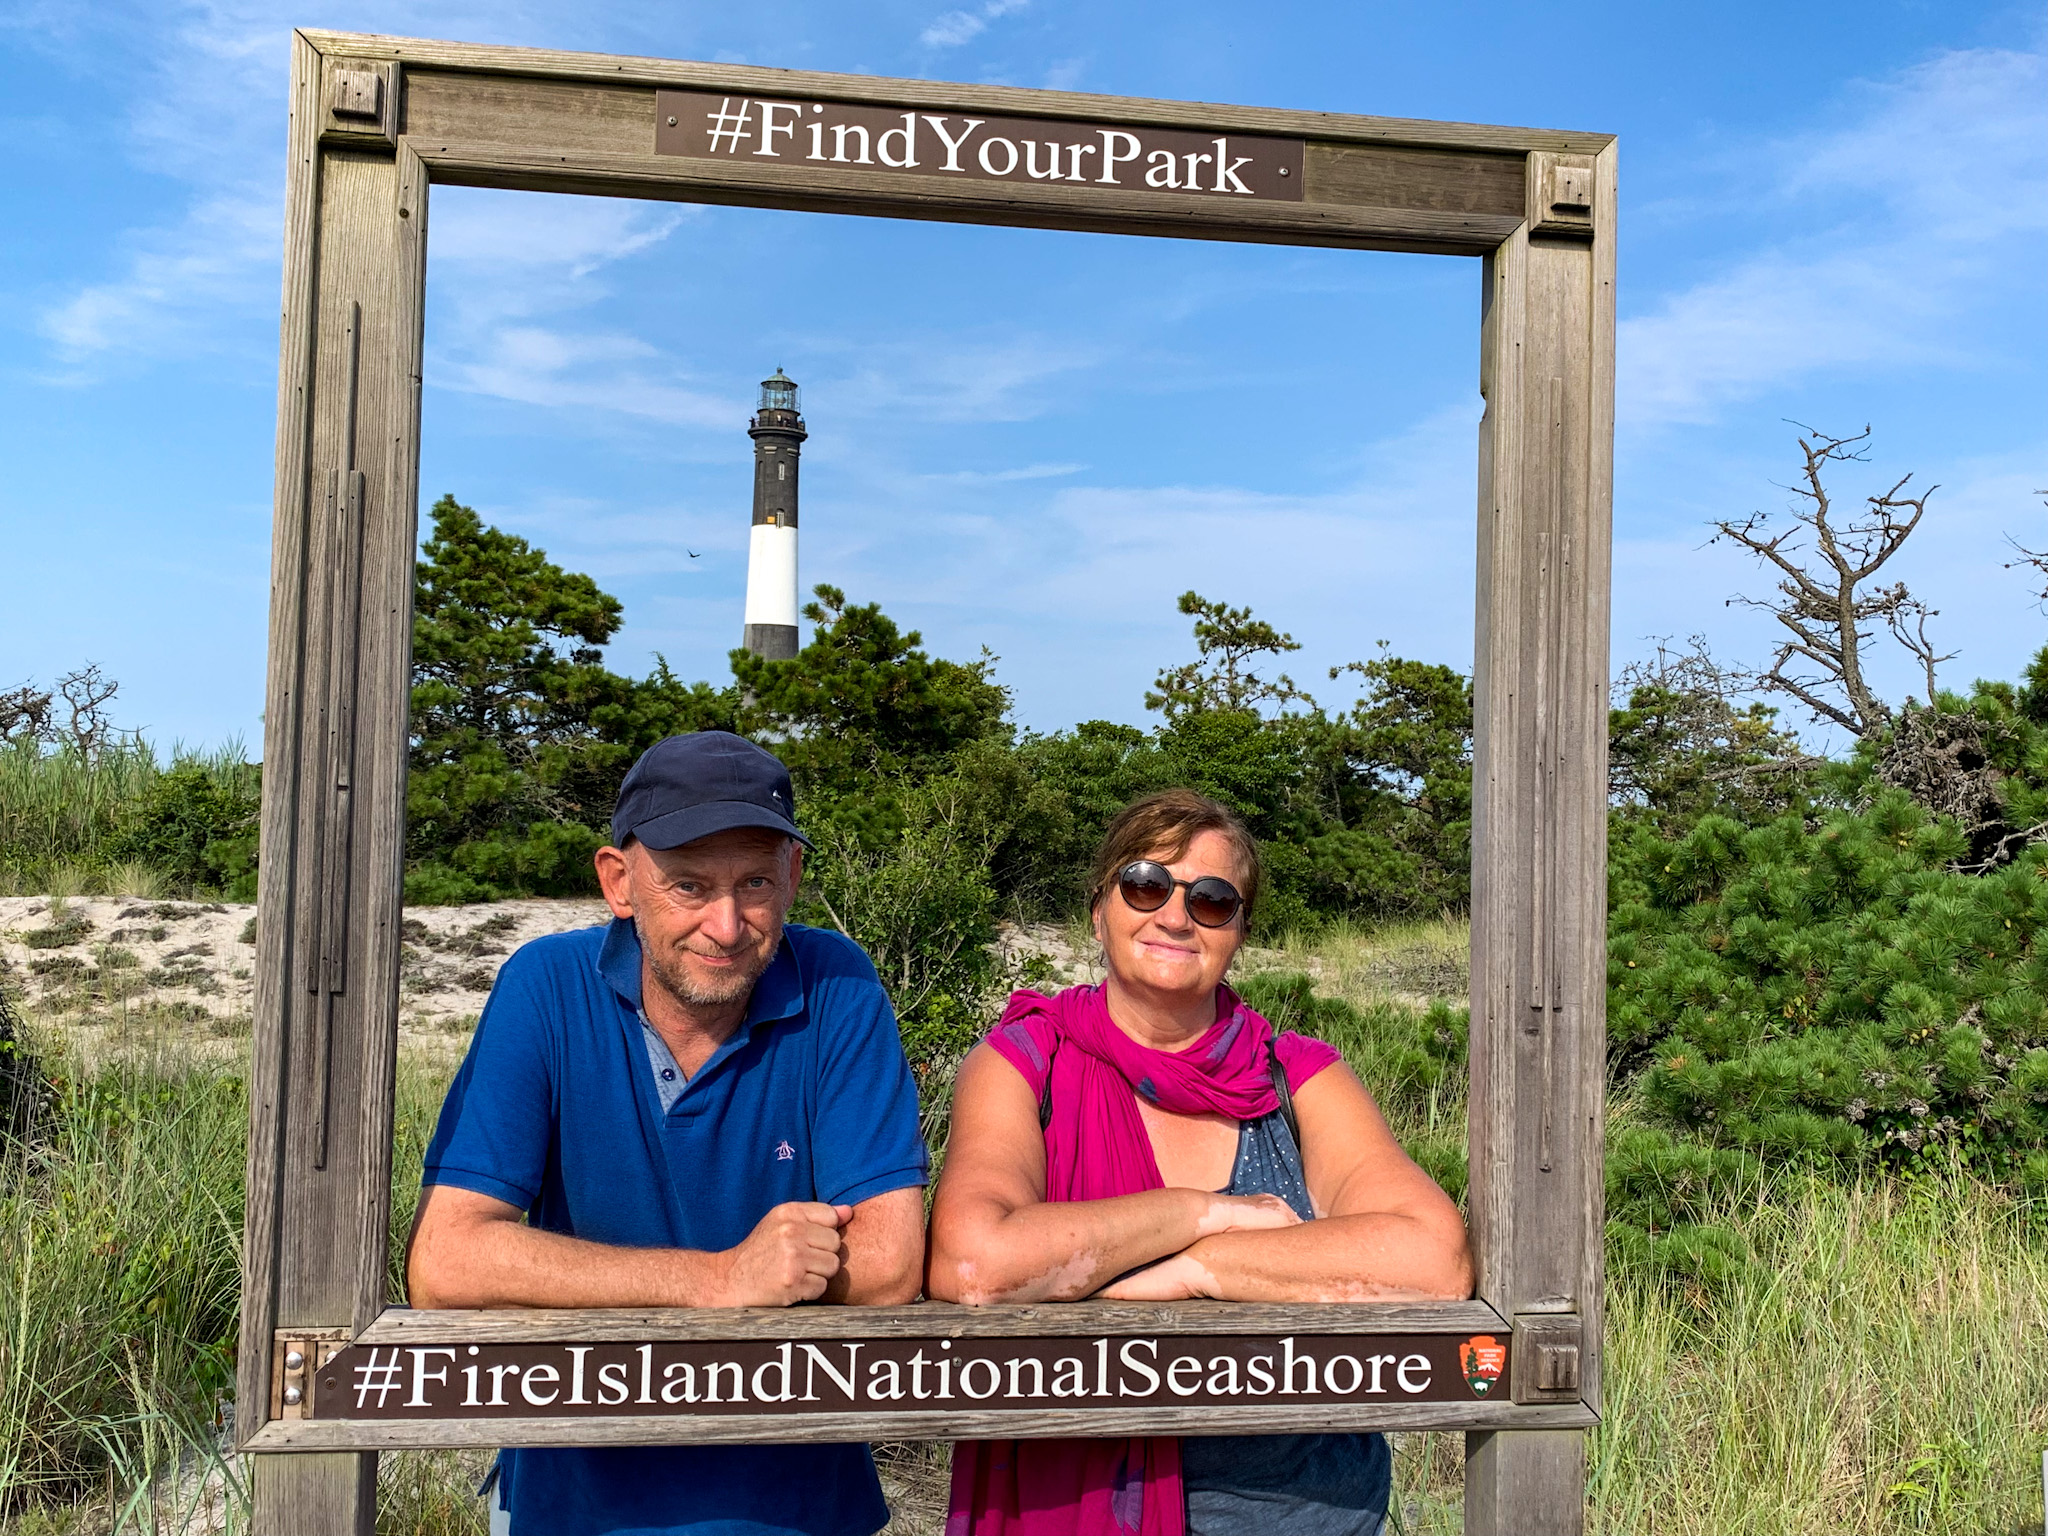 Find nature wherever you are. Fire Island National Seashore, USA.